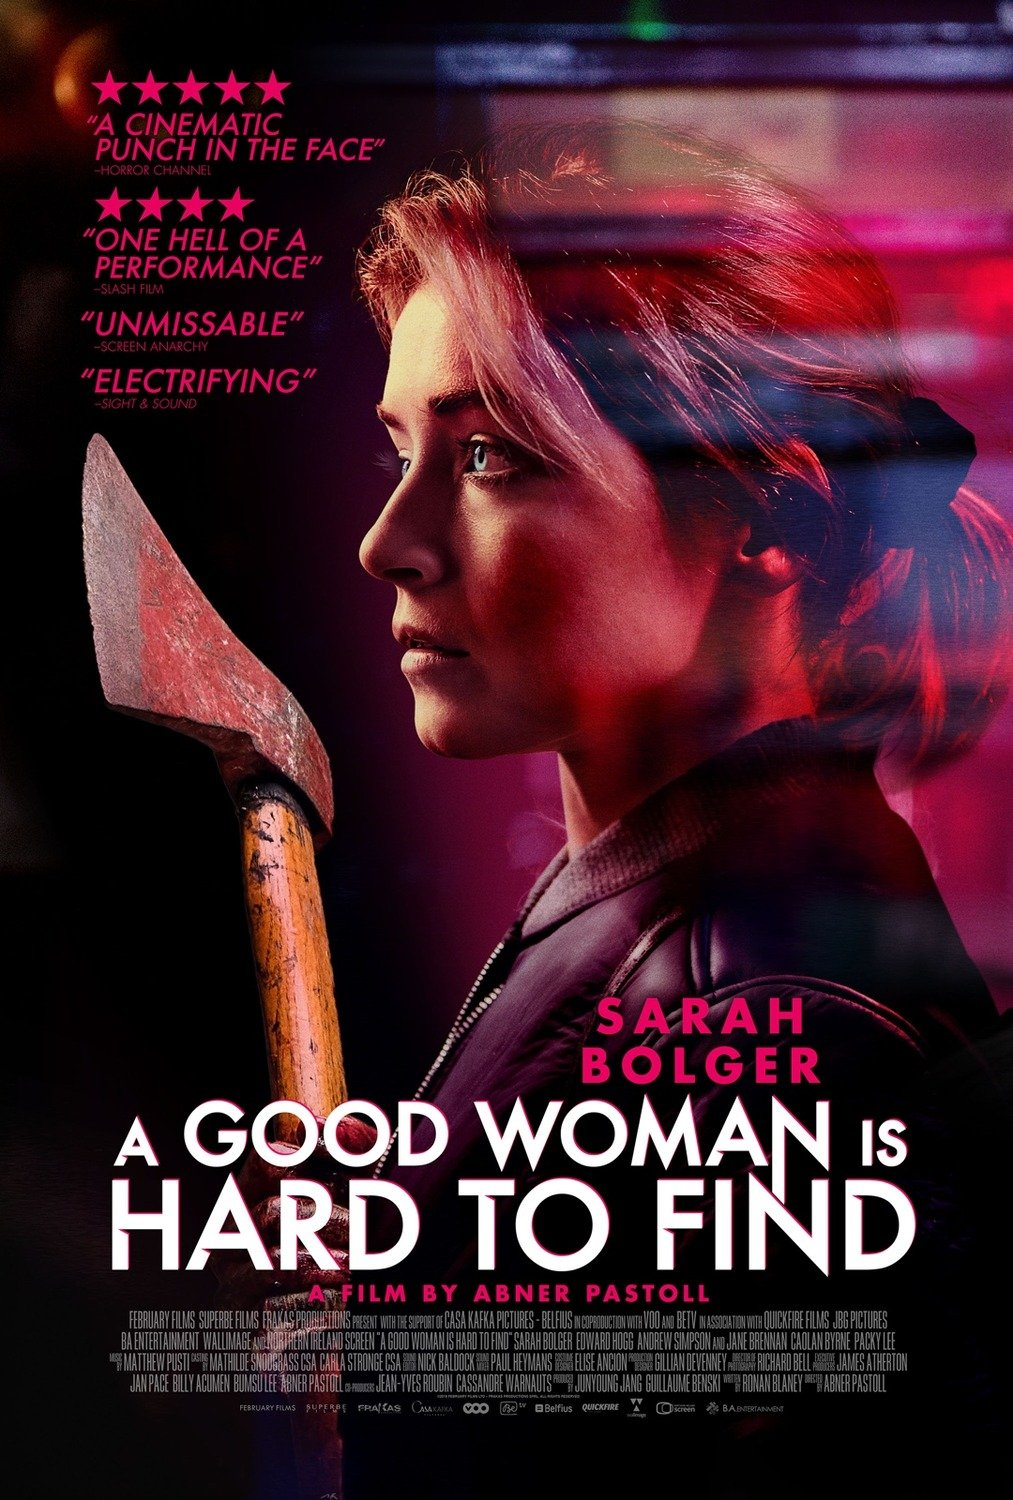 A Good Woman Is Hard to Find poster image